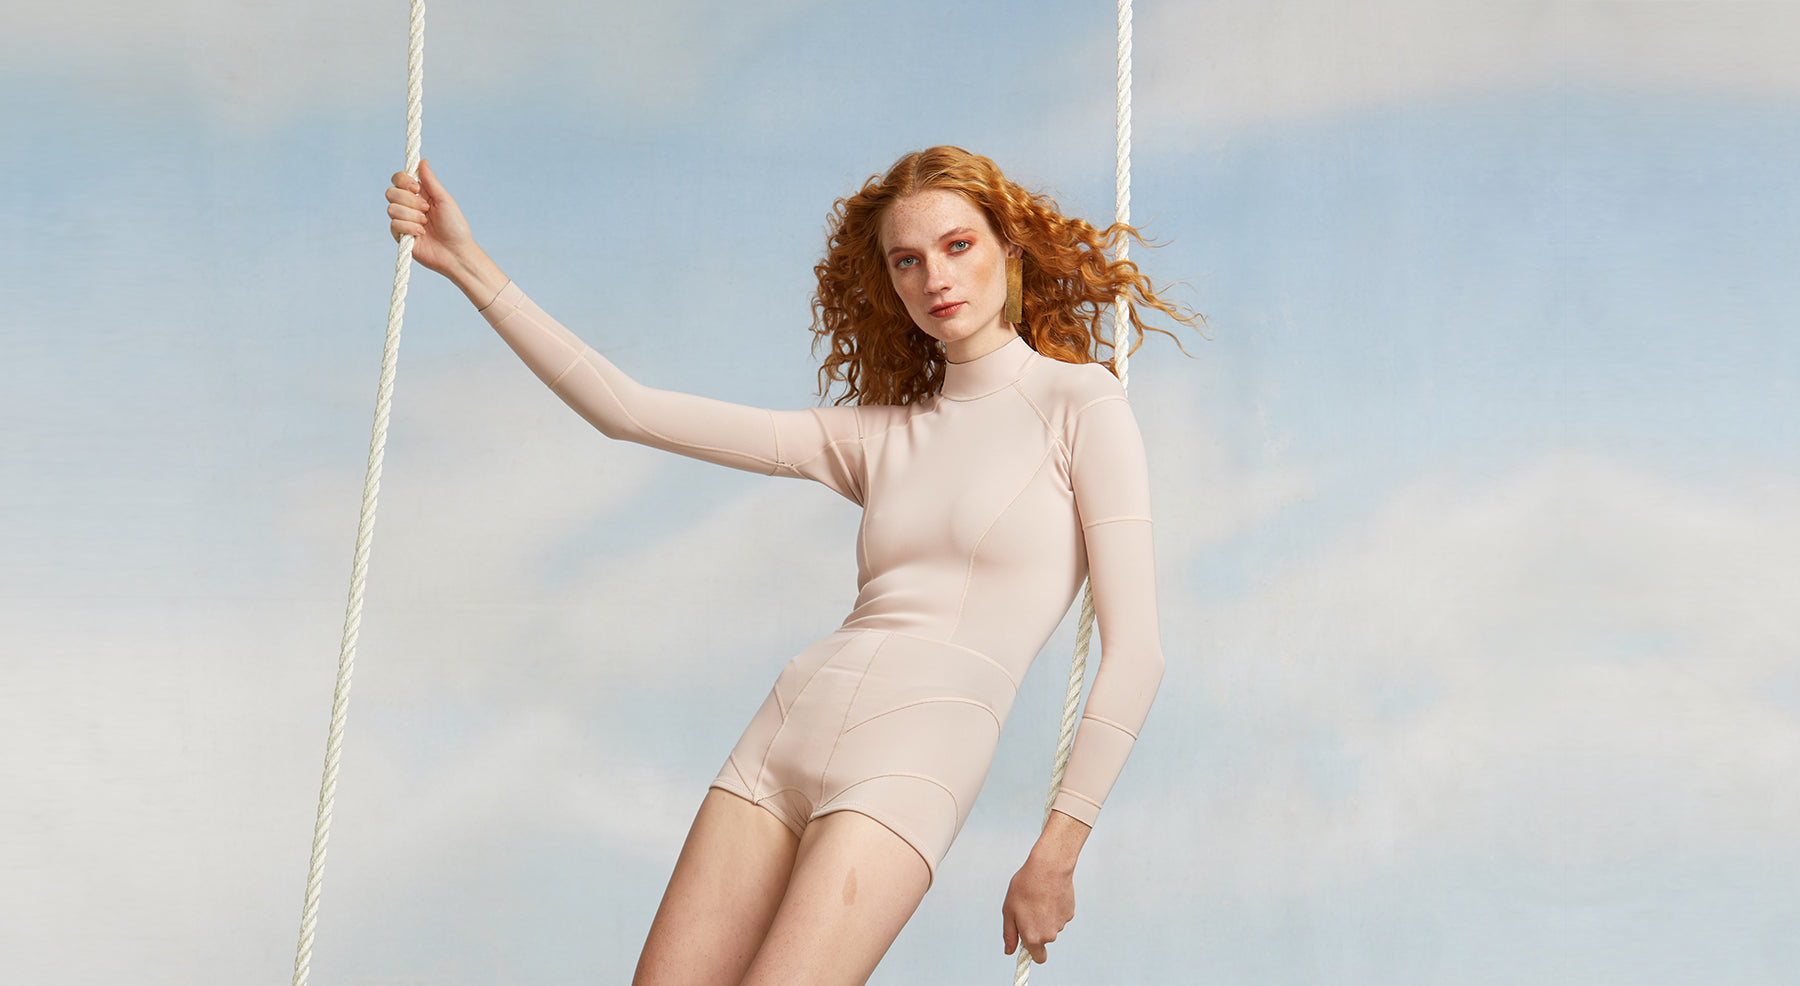 Image featuring a model swinging on a blue sky with clouds backdrop wearing a light pink neoprene wetsuit.